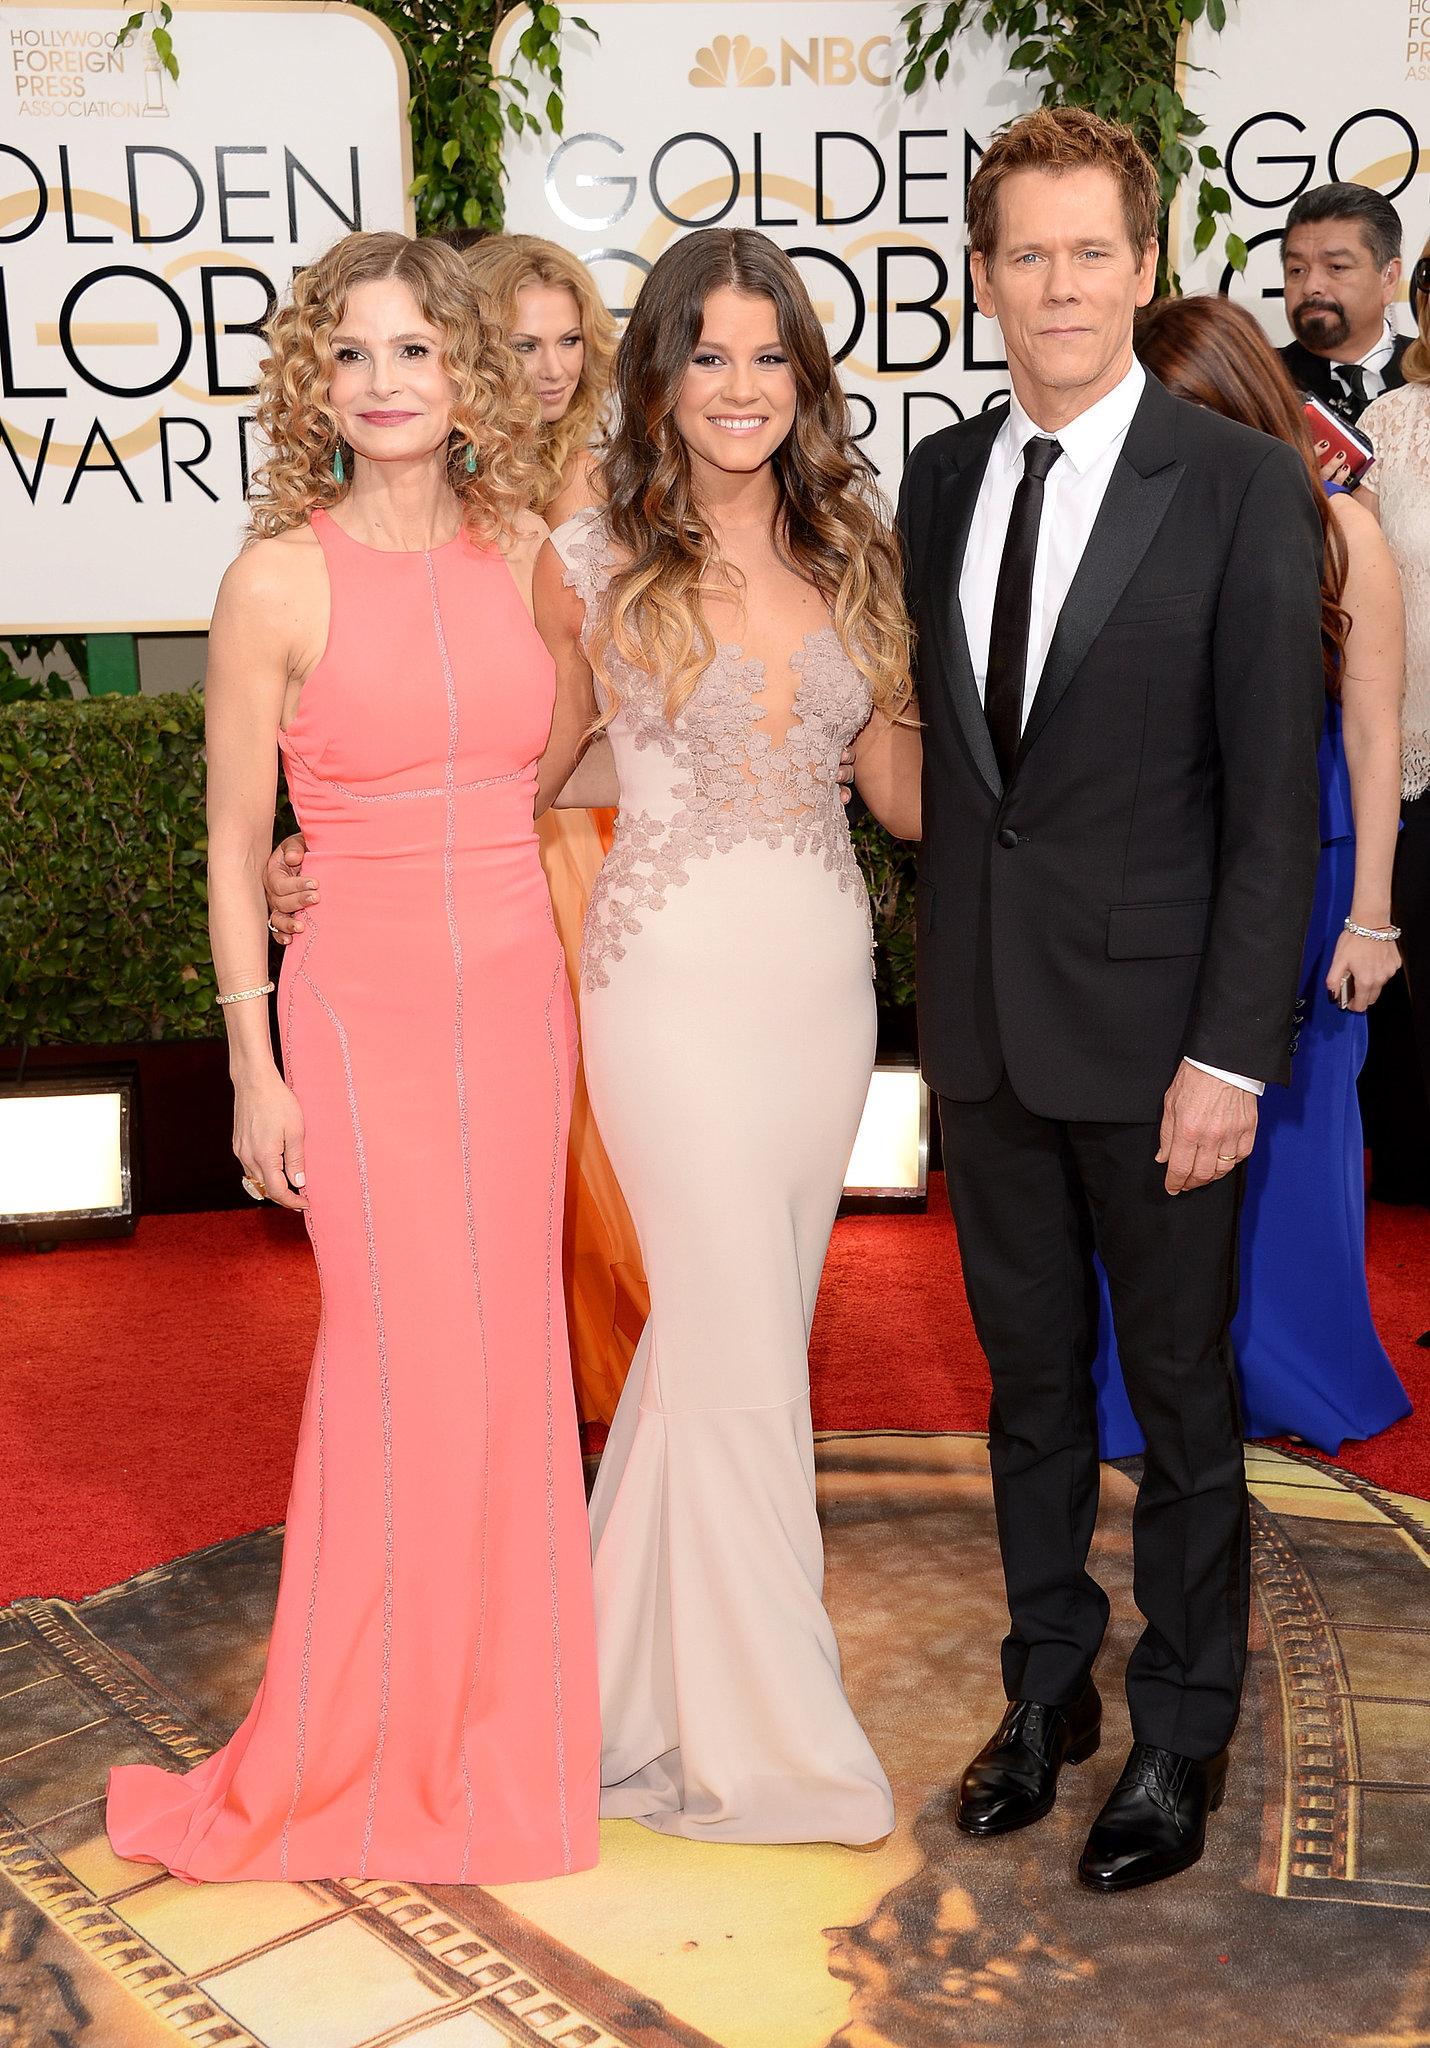 Kyra Sedgwick and Kevin Bacon posed with their daughter and Miss Golden Globe Sosie Bacon.